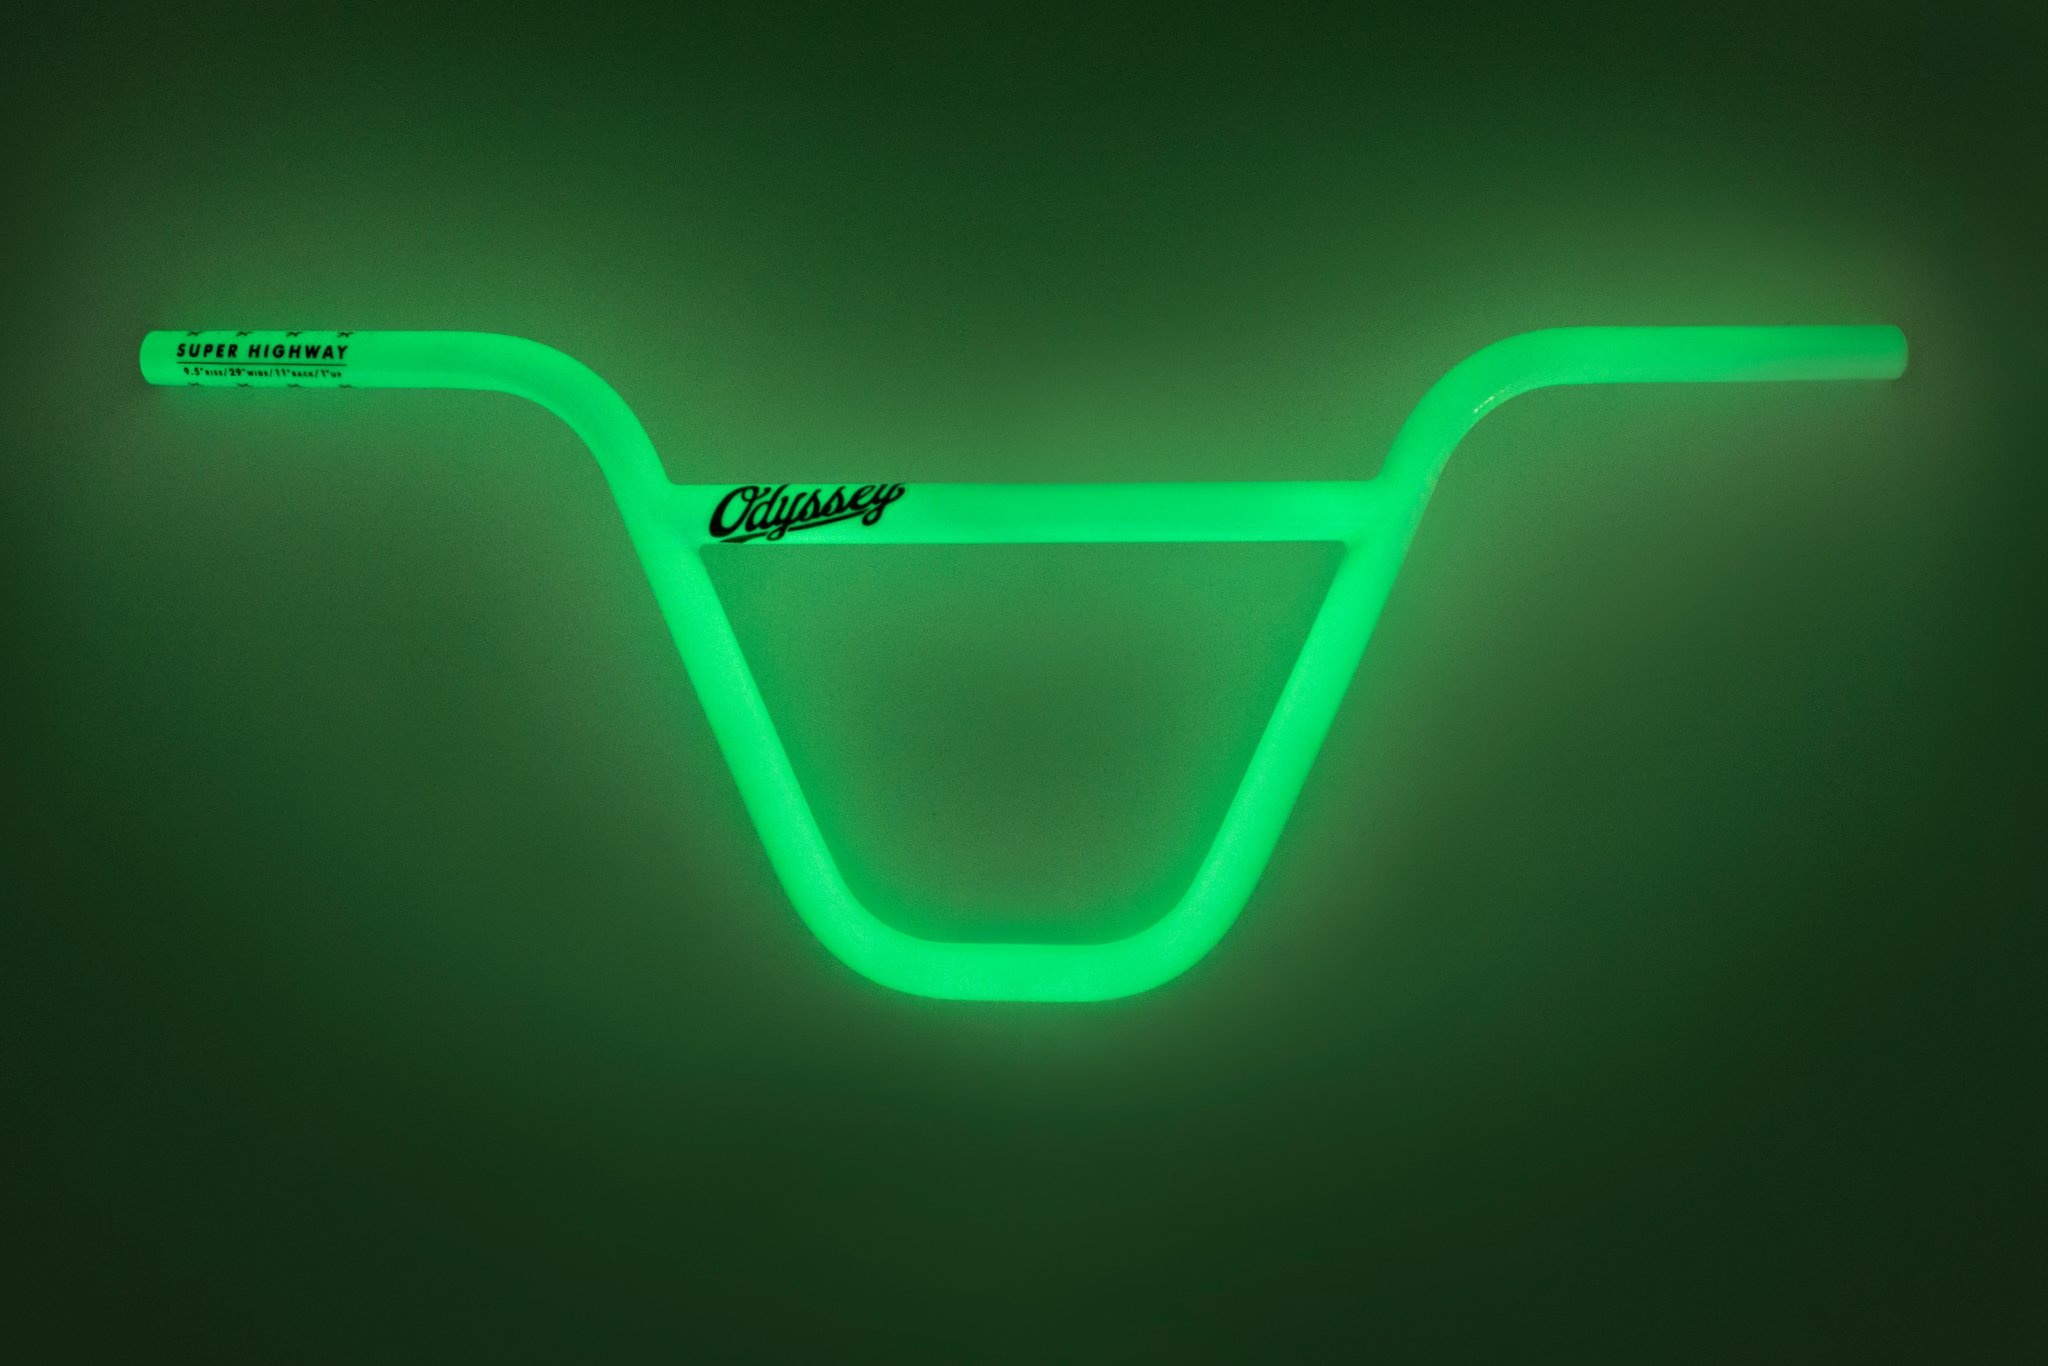 Odyssey Super Highway Limited Edition Glow In The Dark Handlebar